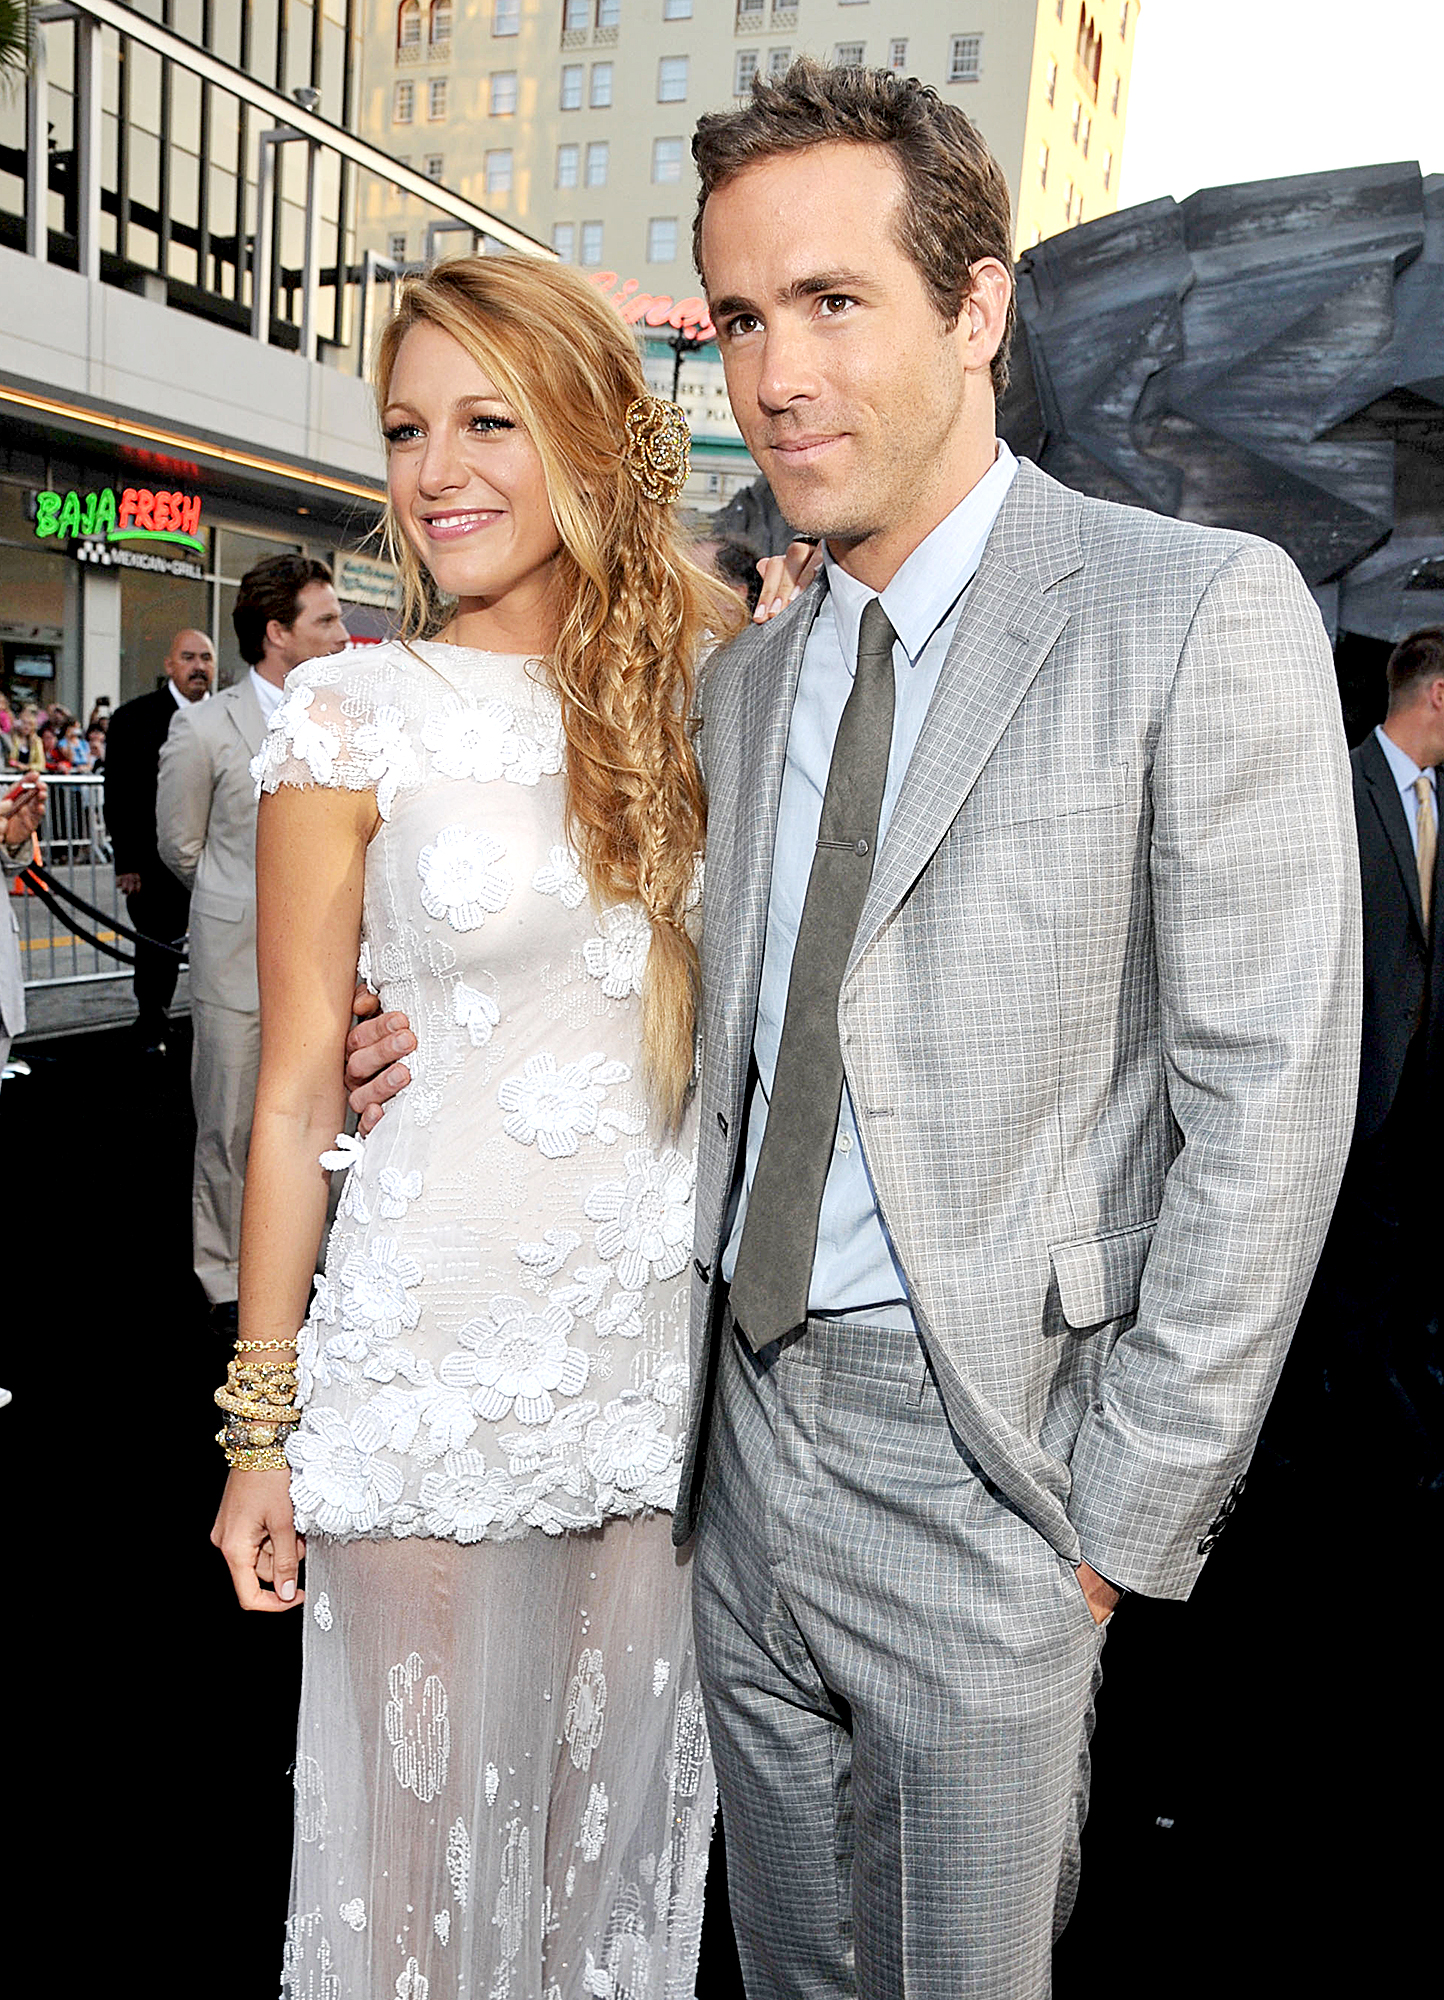 Blake-Lively-Ryan-Reynolds-June-15,-2011 - The action stars held each other on the red carpet at the premiere of Green Lantern at Grauman's Chinese Theater in Hollywood on June 15, 2011. Lively looked stunning in a white floral Chanel dress.